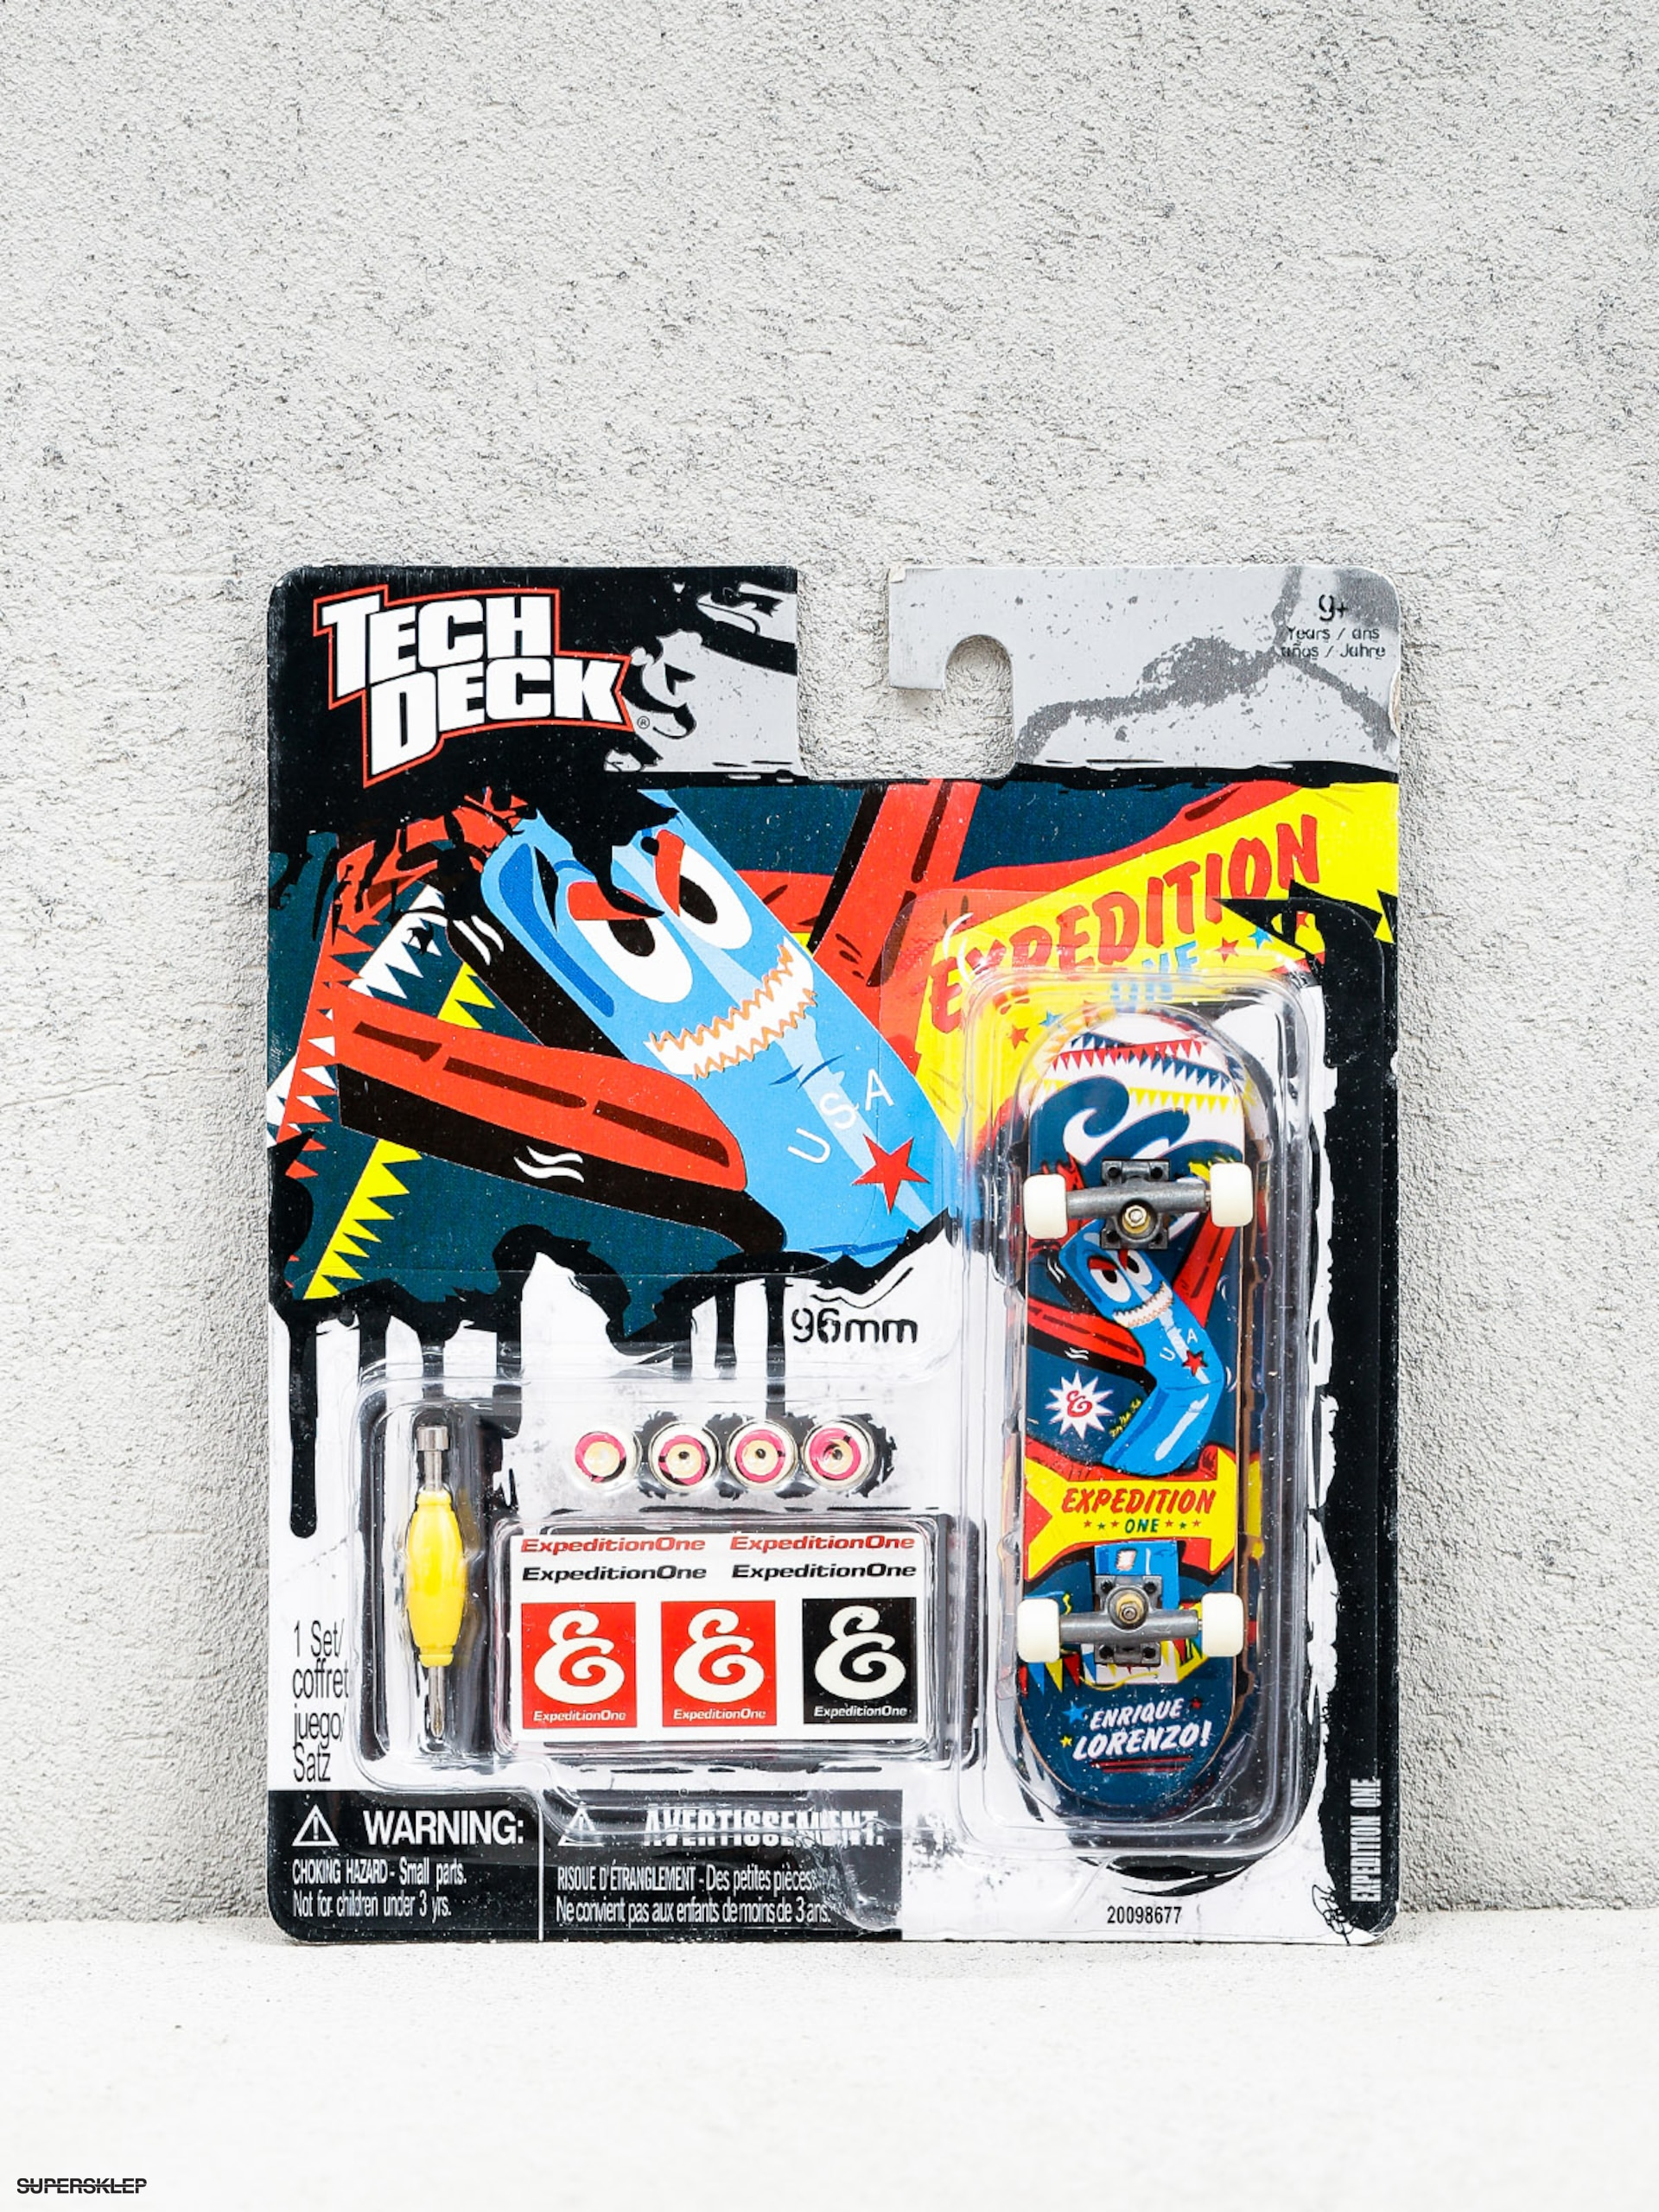 Tech Deck Fingerboard Expedition One 02